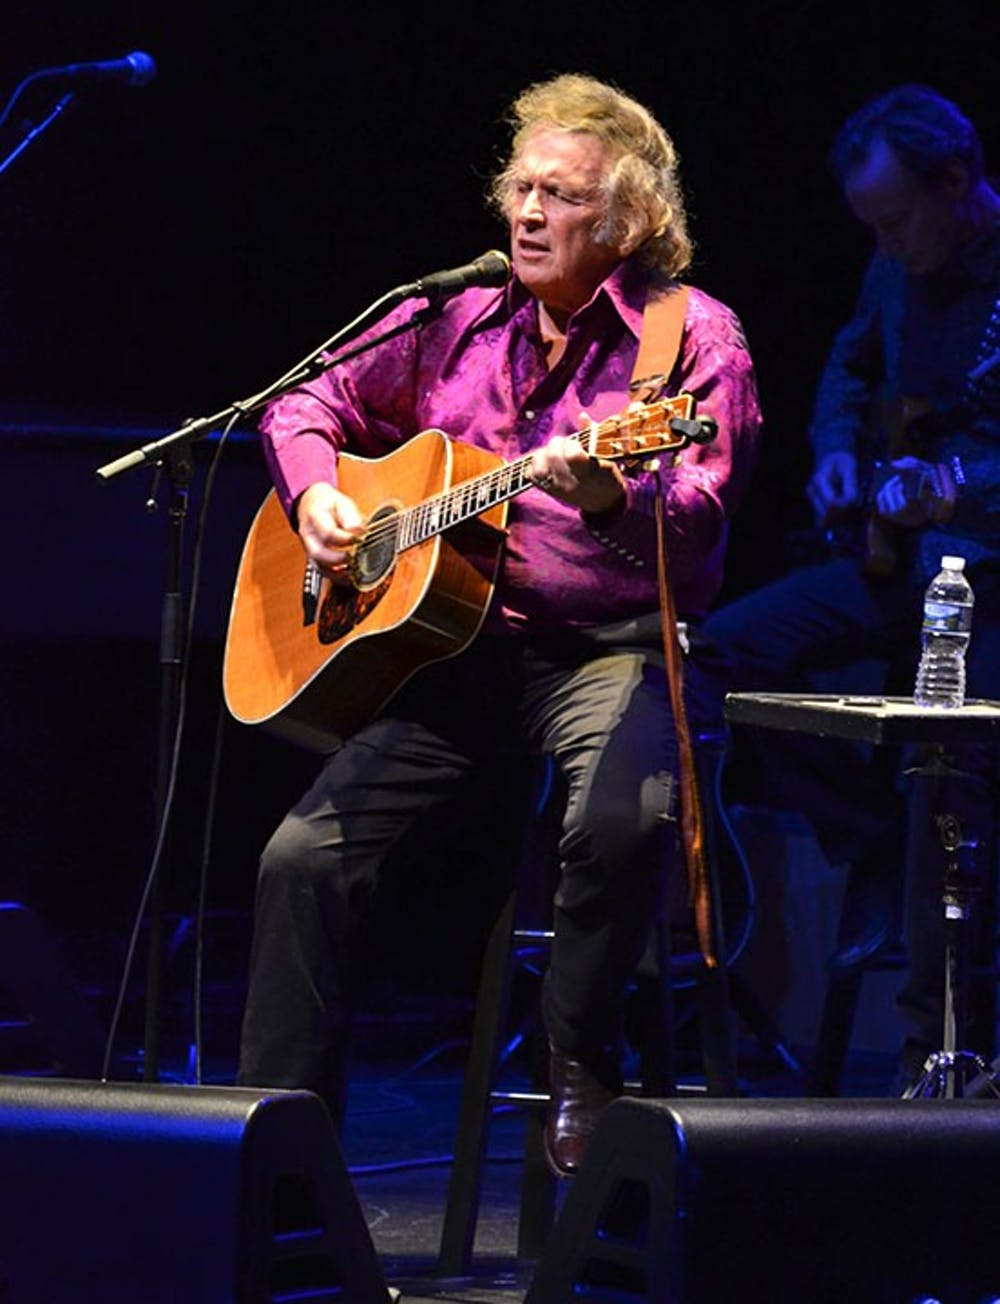 Fans call Don McLean for encore